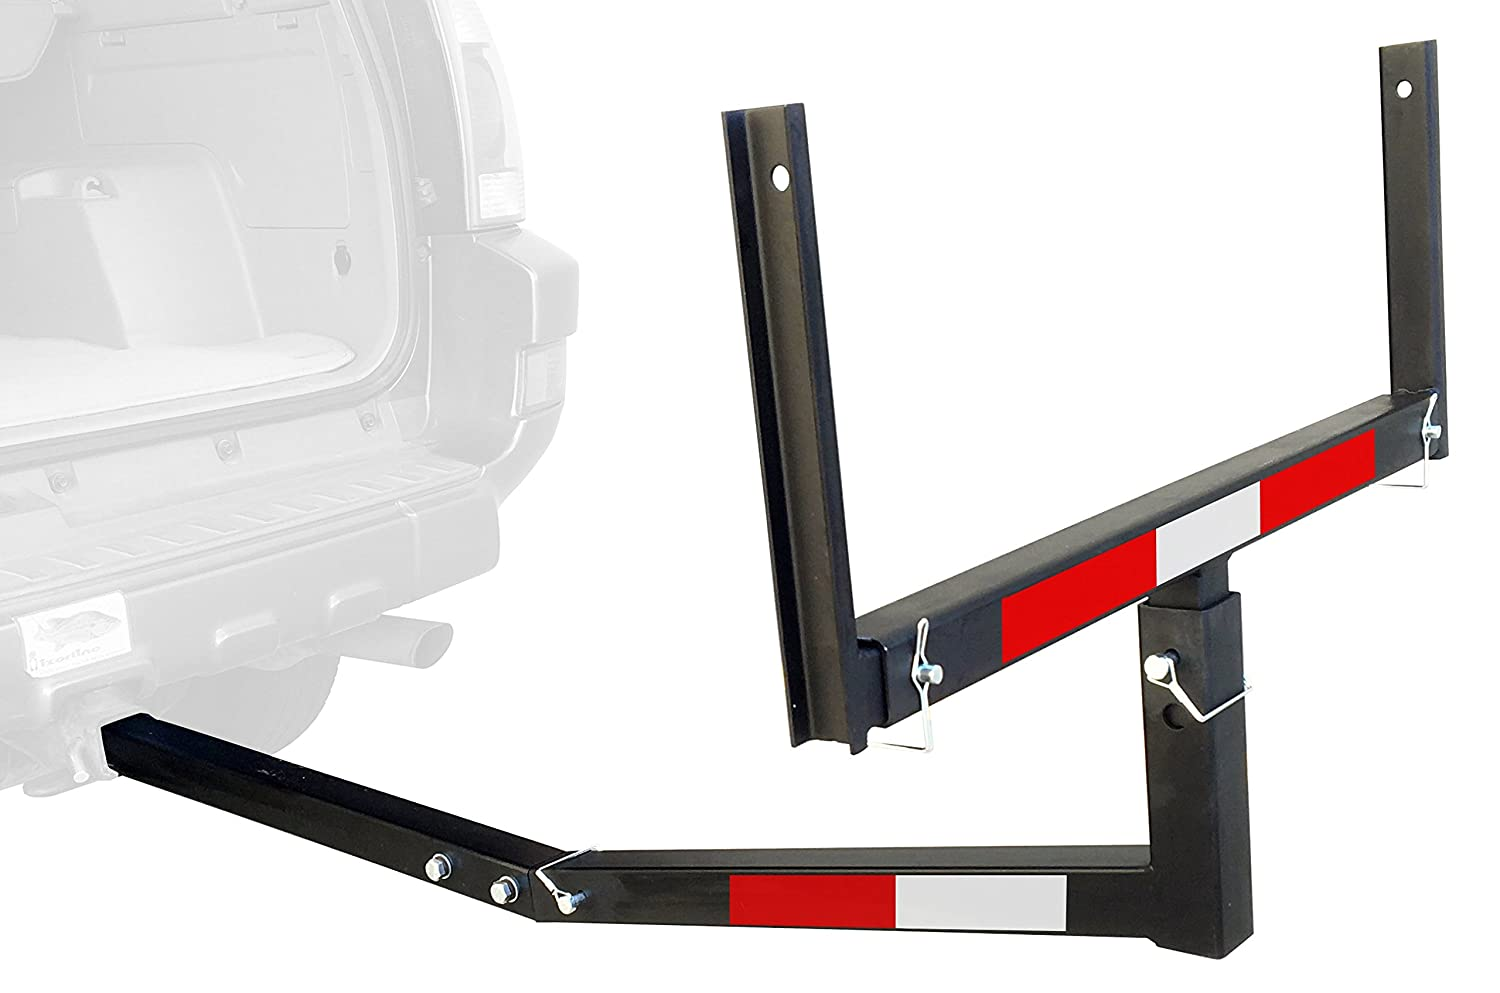 MaxxHaul 70231 Hitch Mount Truck Bed Extender (for Ladder, Rack, Canoe, Kayak, Long Pipes and Lumber)